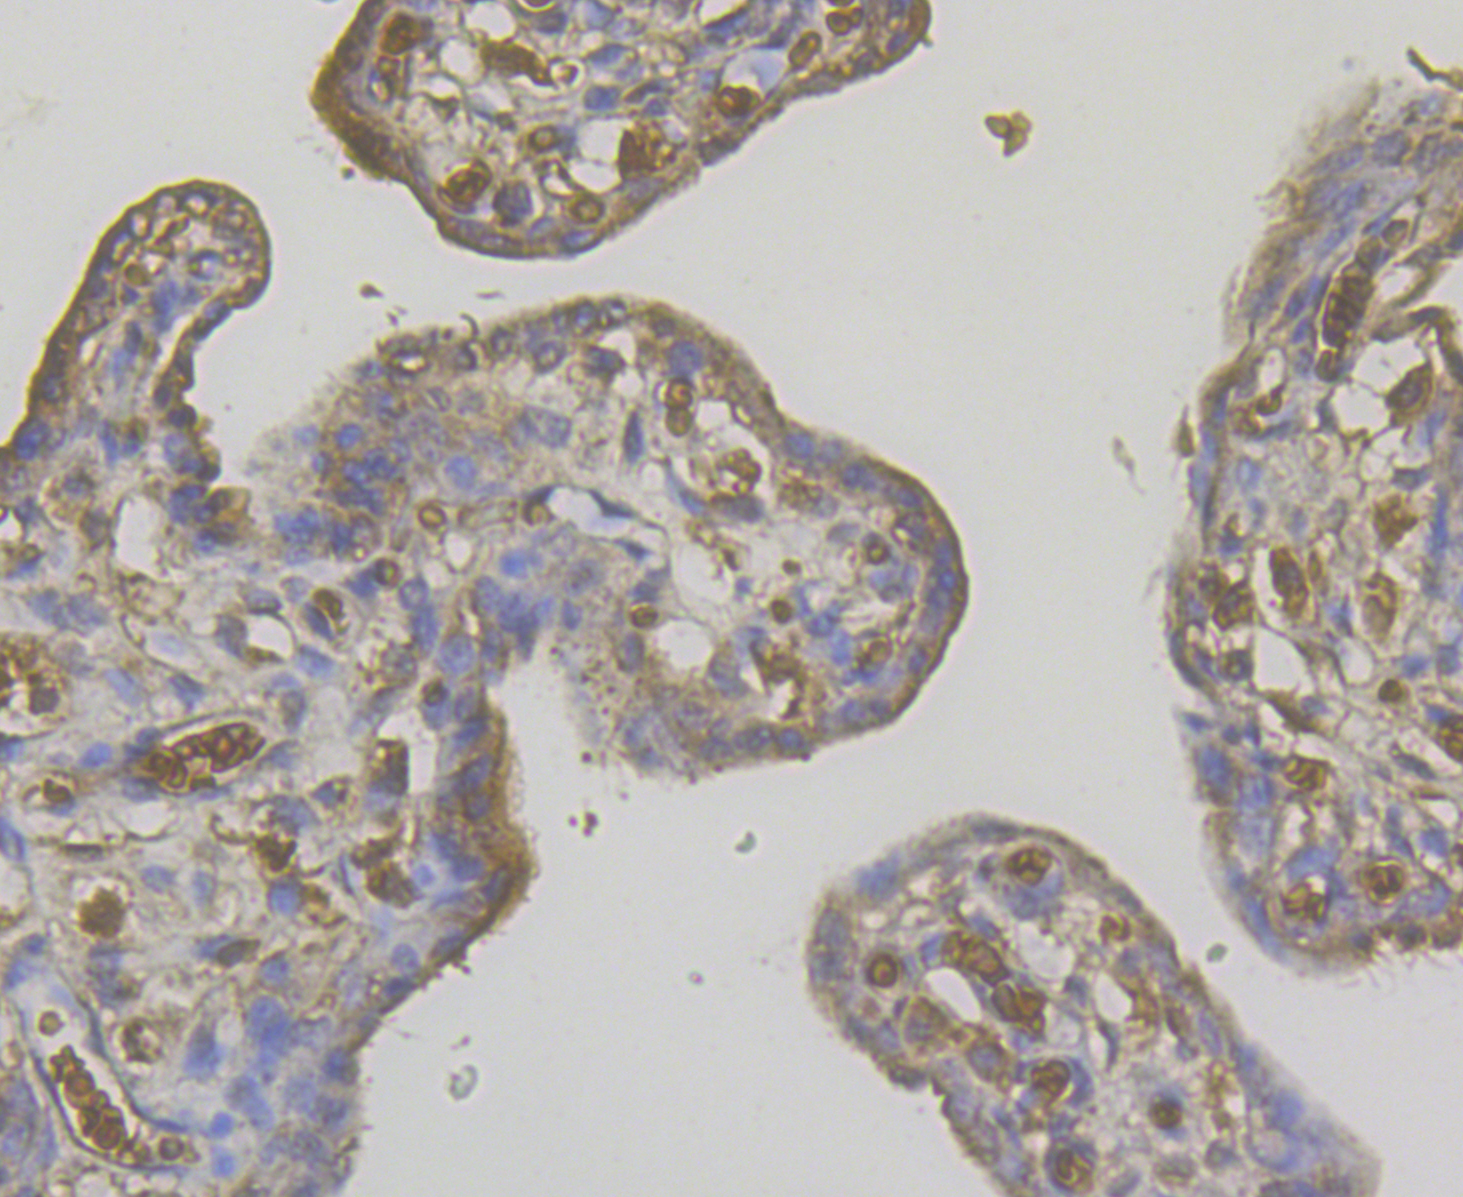 Immunohistochemical analysis of paraffin-embedded human placenta tissue using anti-STIM2 antibody. The section was pre-treated using heat mediated antigen retrieval with Tris-EDTA buffer (pH 8.0-8.4) for 20 minutes.The tissues were blocked in 5% BSA for 30 minutes at room temperature, washed with ddH2O and PBS, and then probed with the antibody (ER1901-04) at 1/200 dilution, for 30 minutes at room temperature and detected using an HRP conjugated compact polymer system. DAB was used as the chromogen. Counter stained with hematoxylin and mounted with DPX.